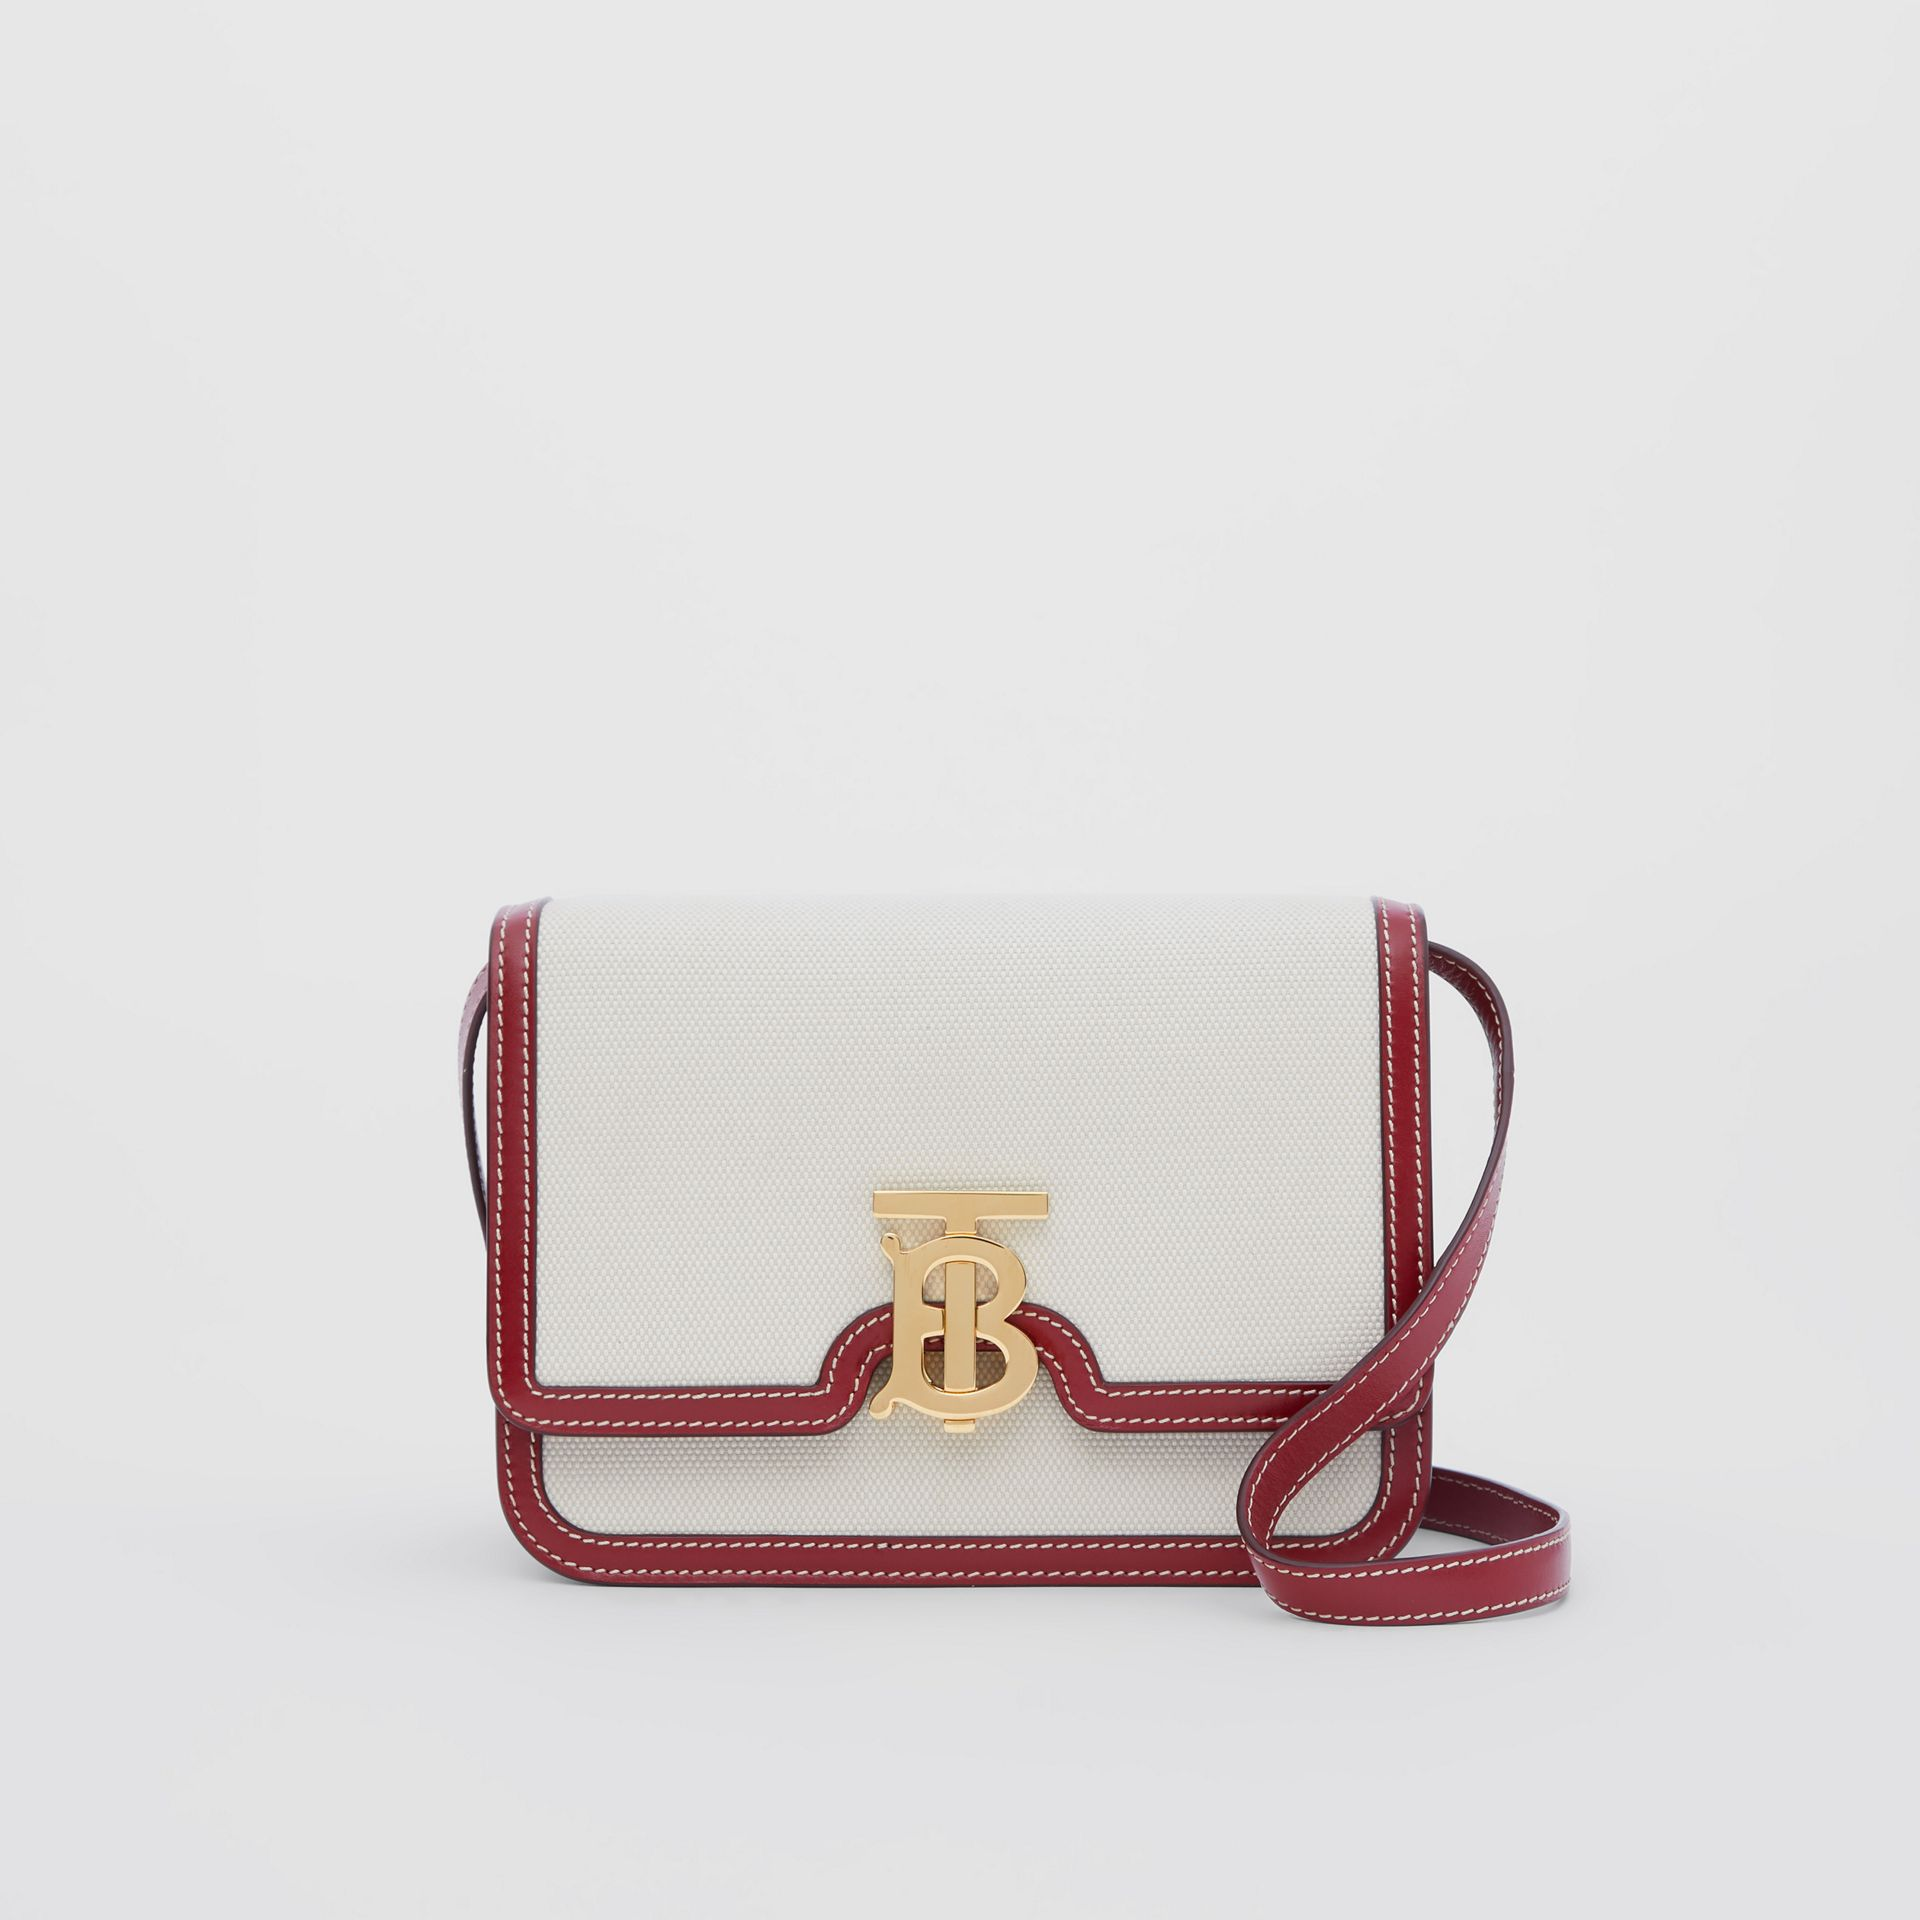 Small Two-tone Canvas and Leather TB Bag in Natural/dark Carmine - Women | Burberry Australia - gallery image 10